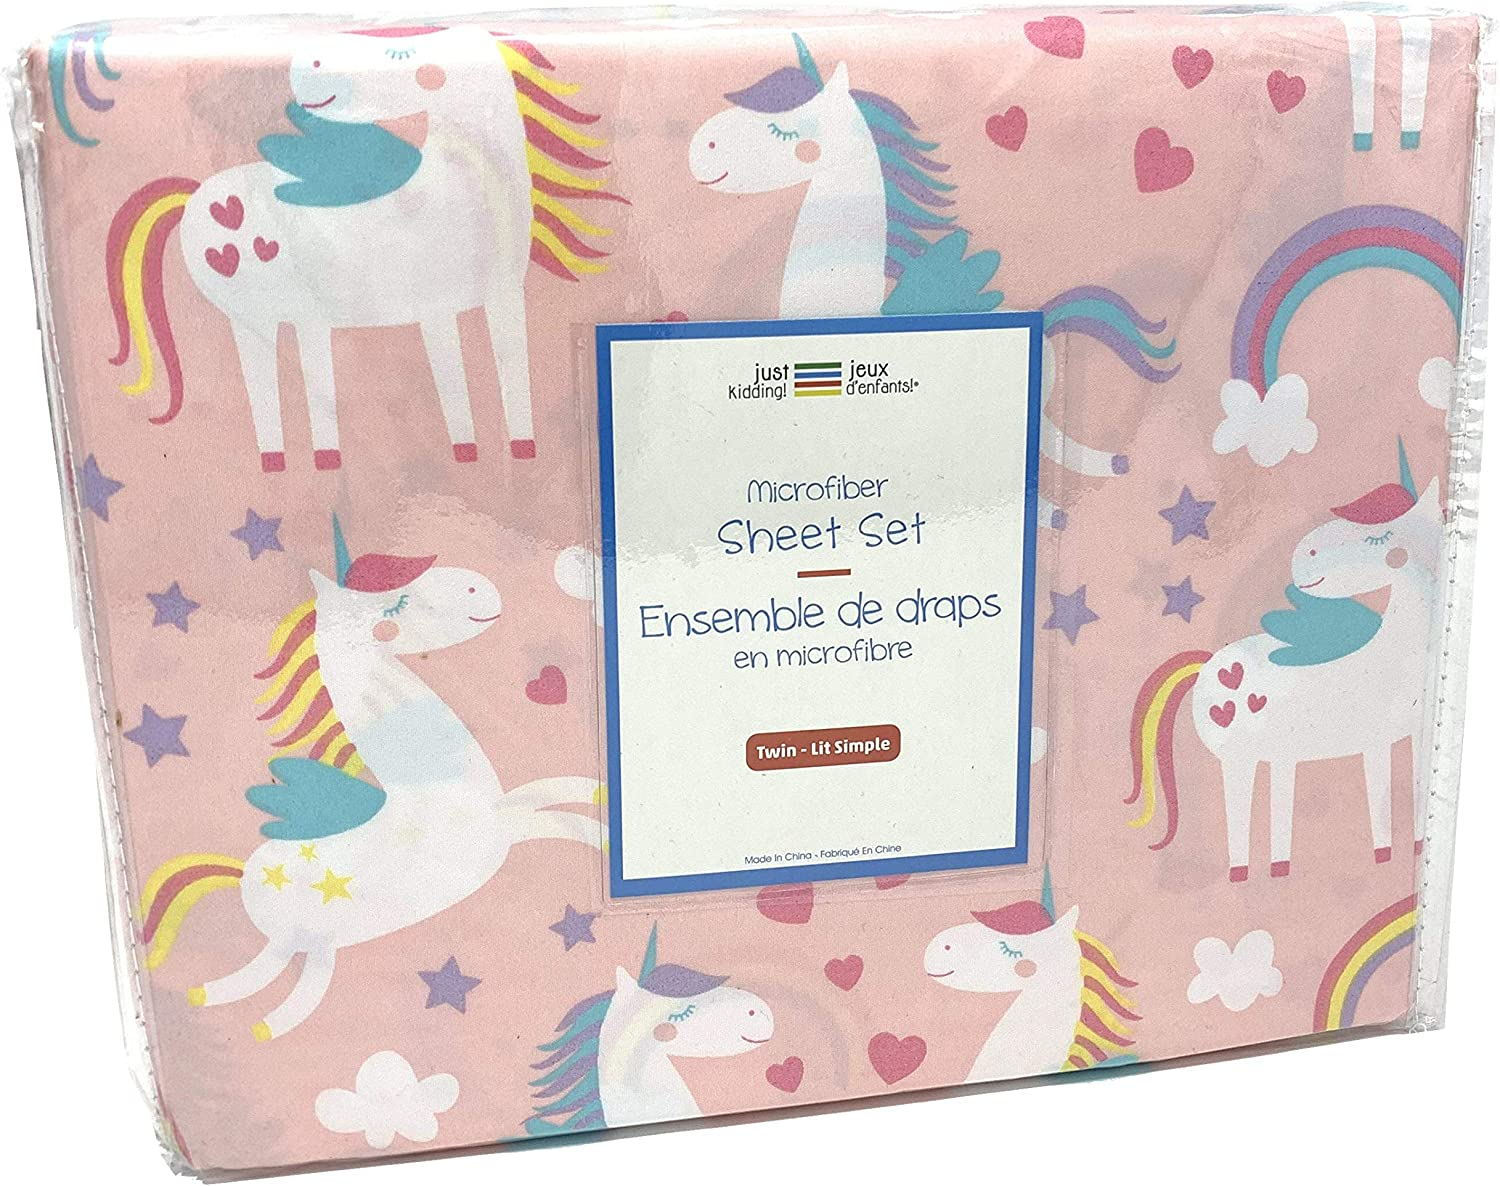 Jeux D'enfants  Soft Microfiber Rainbow Pink White Unicorn Sheet Set with Stars Hearts and Wings - Pink Sheets for Girls Unicorn Print (Twin)